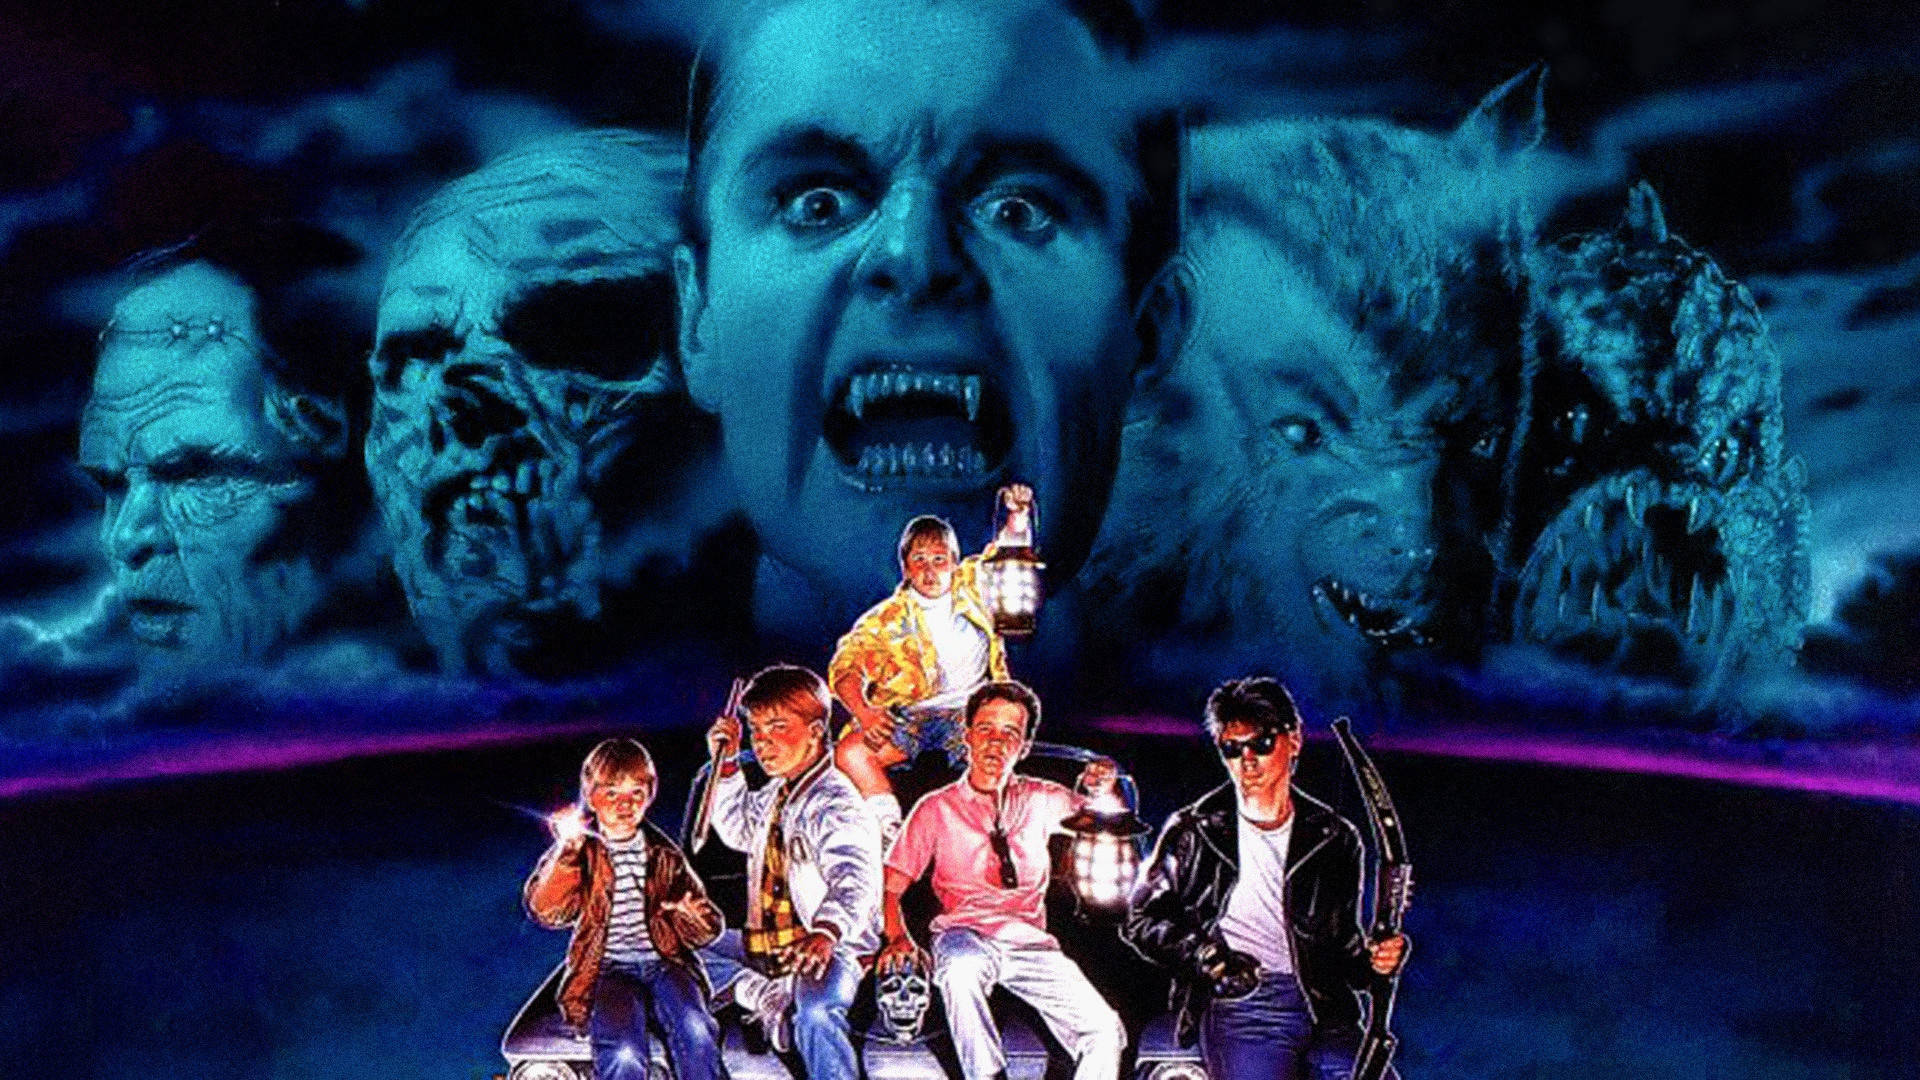 Shane Black Wants To Do A Monster Squad Sequel